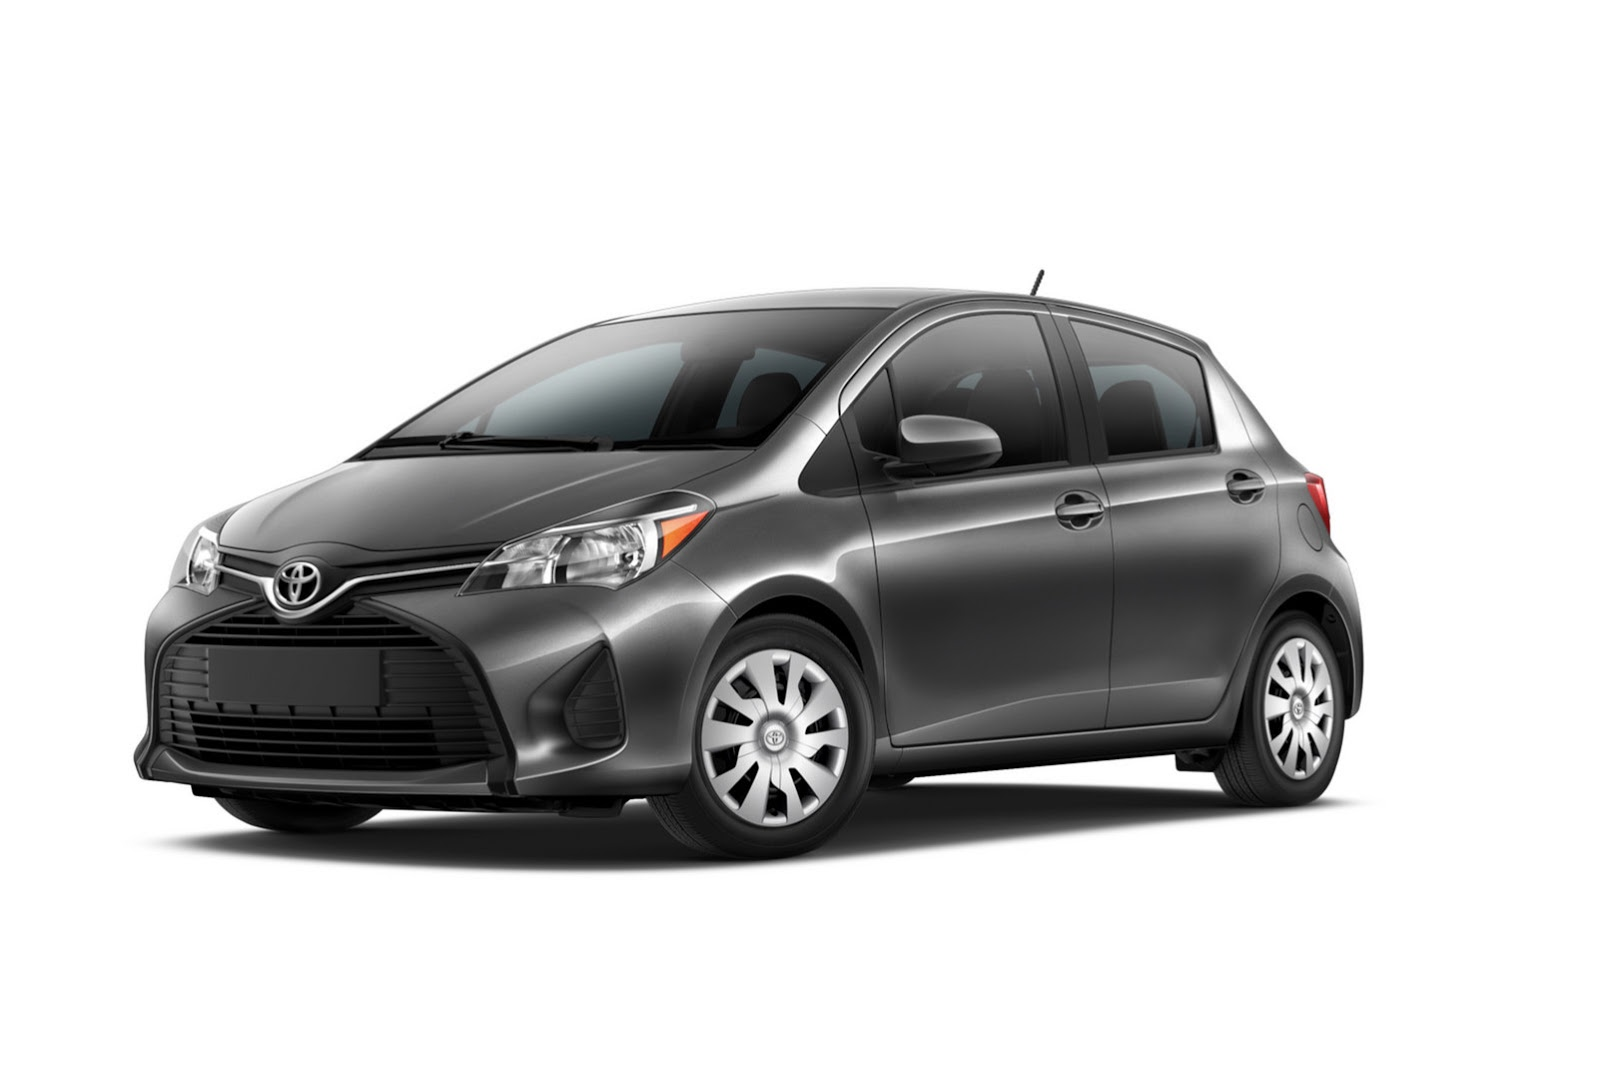 2014 toyota yaris restyl e page 6. Black Bedroom Furniture Sets. Home Design Ideas